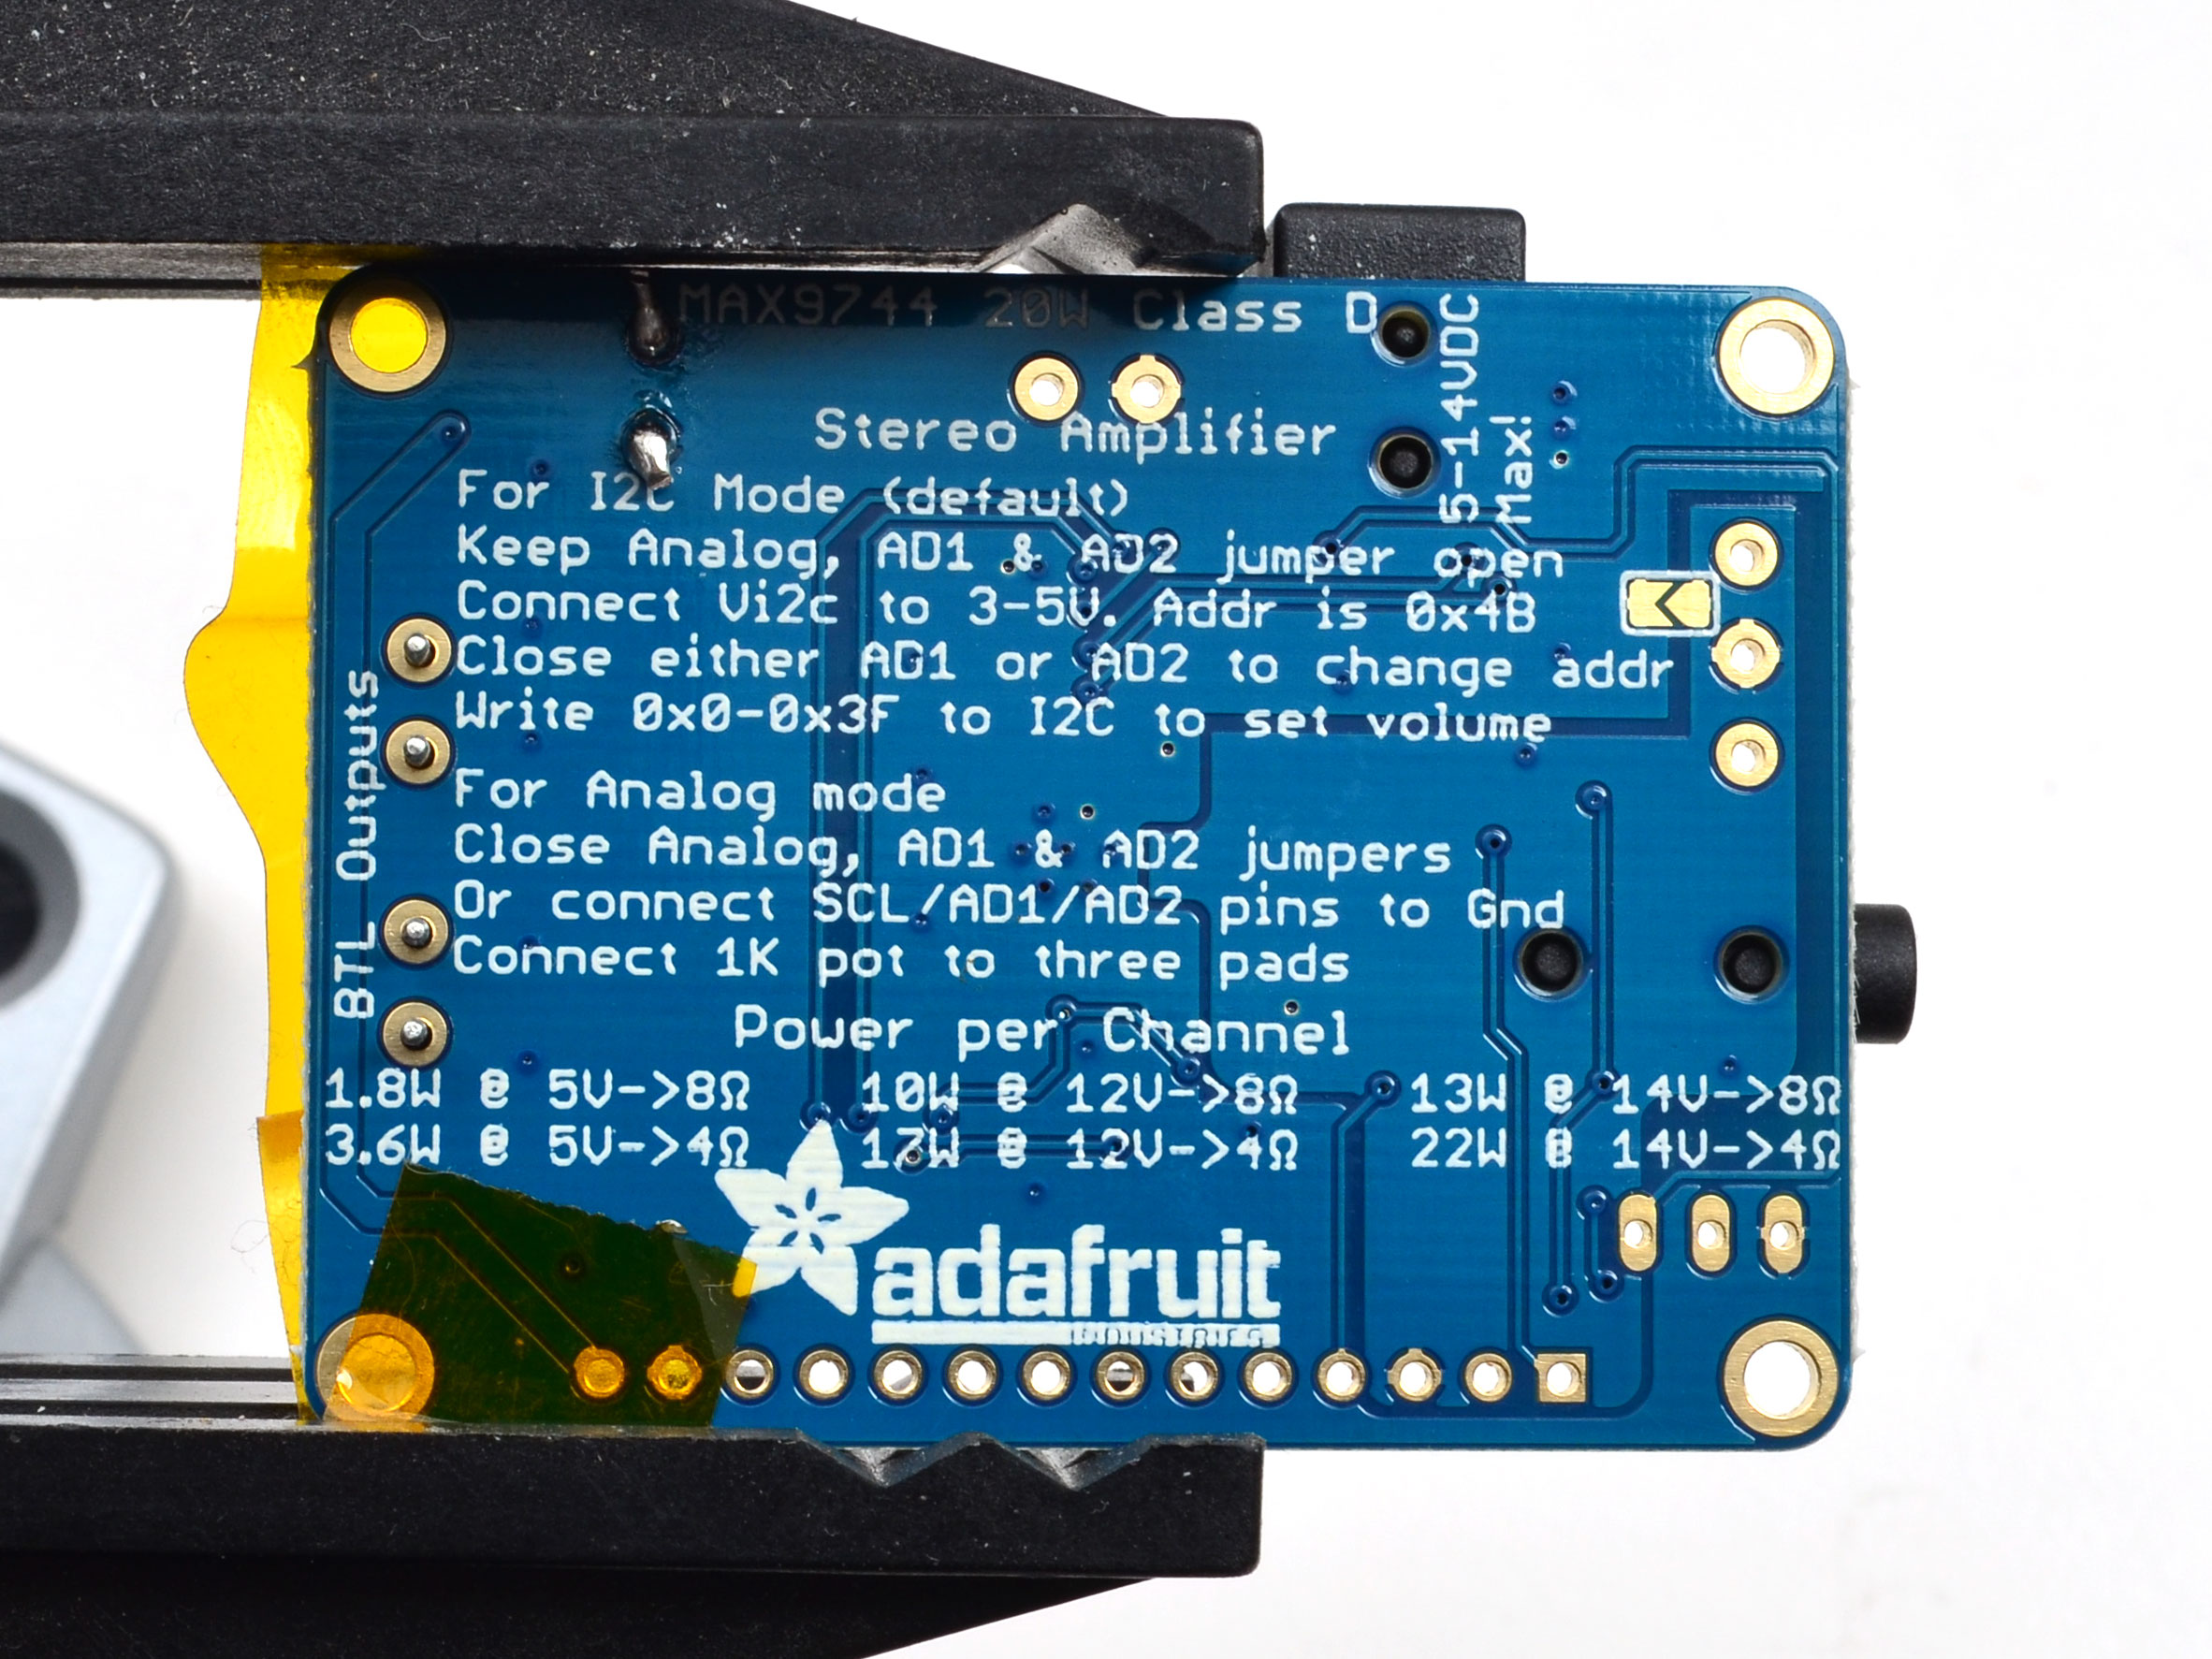 adafruit_products_spktermflip.jpg